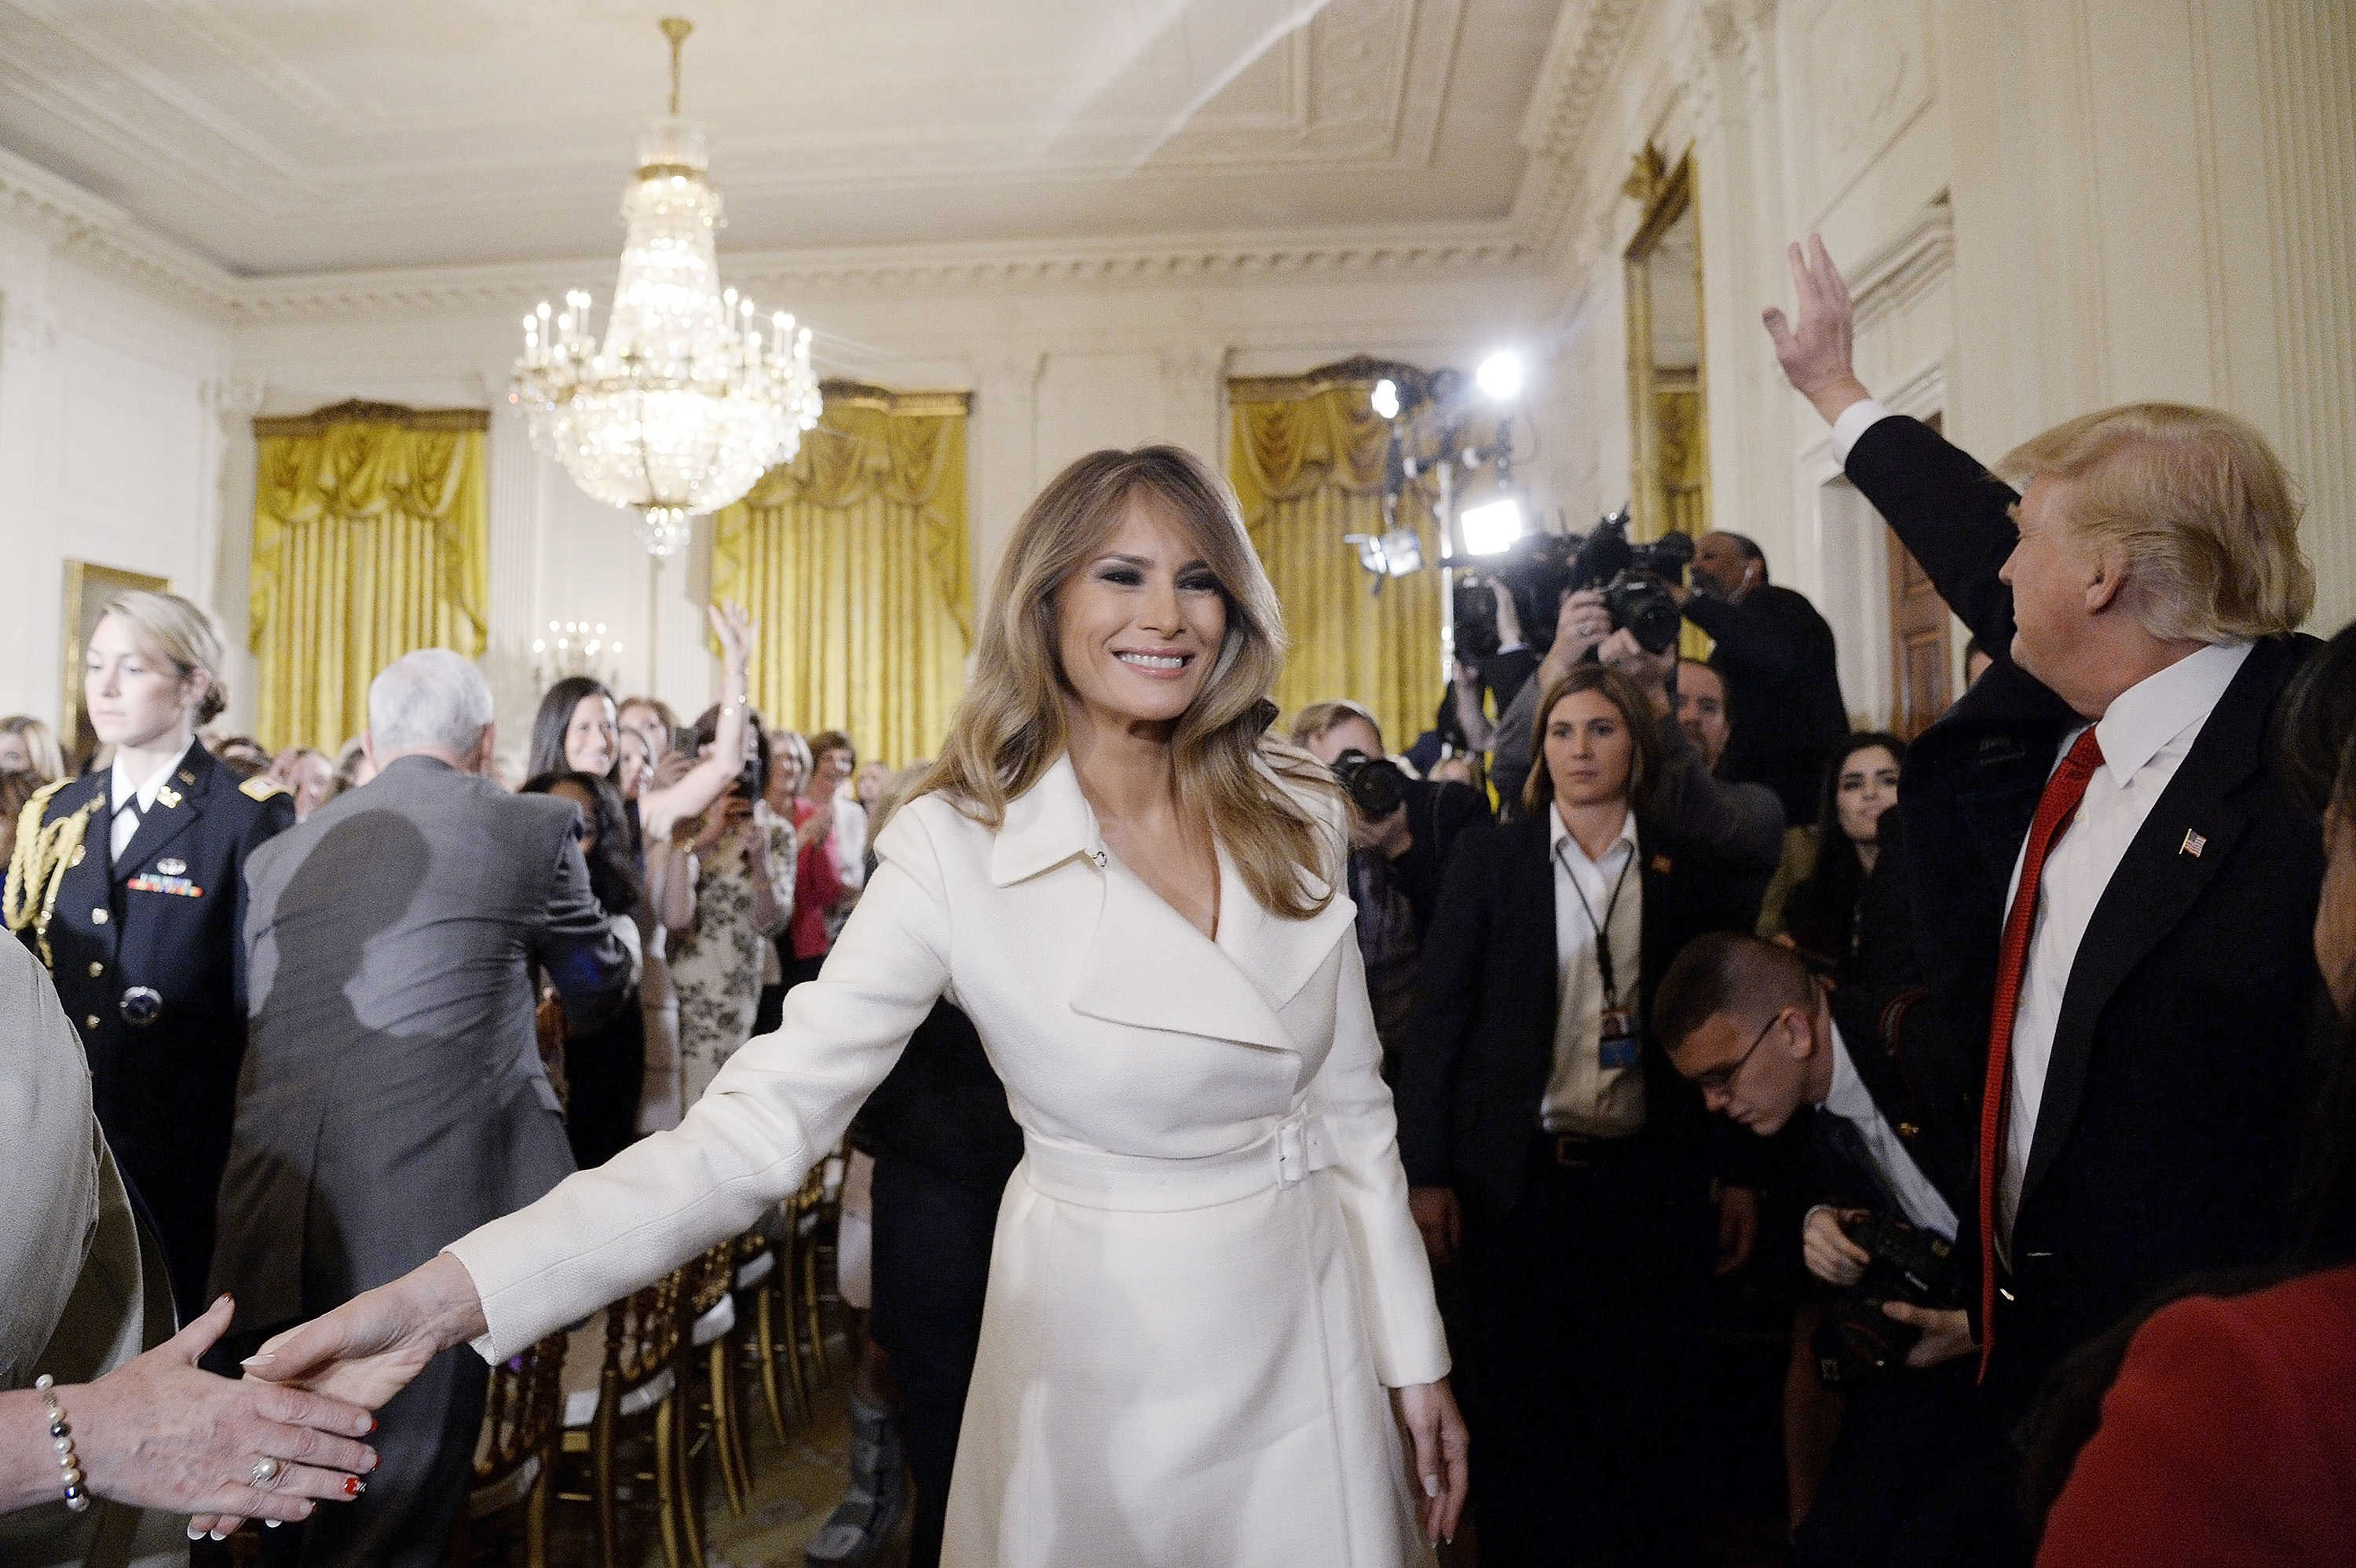 First lady Melania Trump attends the Women´s Empowerment Panel on Wednesday, March 29, 2017 in an optic white tailored coat dress